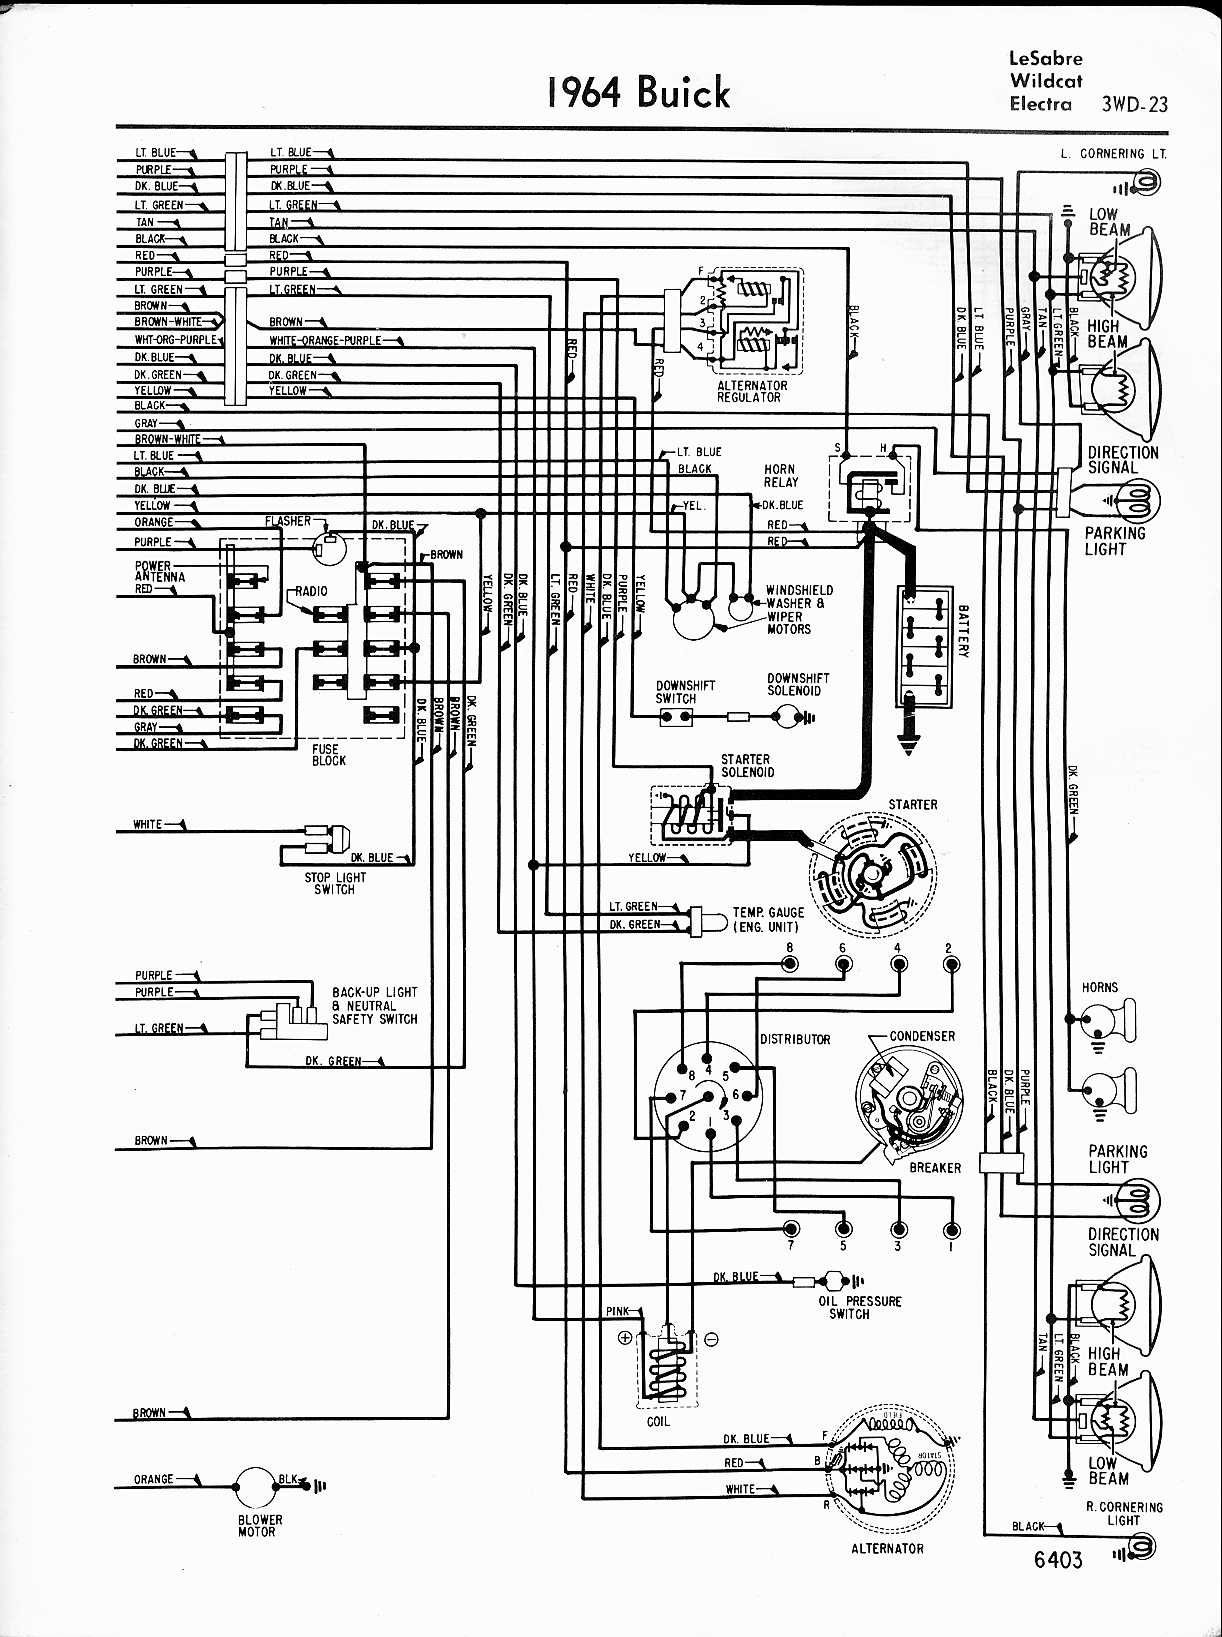 2001 crown victoria window wiring diagram wiring diagram F150 Wiring Diagram 2001 crown victoria window wiring diagram 3 17 stefvandenheuvel nl u2022crown victoria wiring diagram wiring